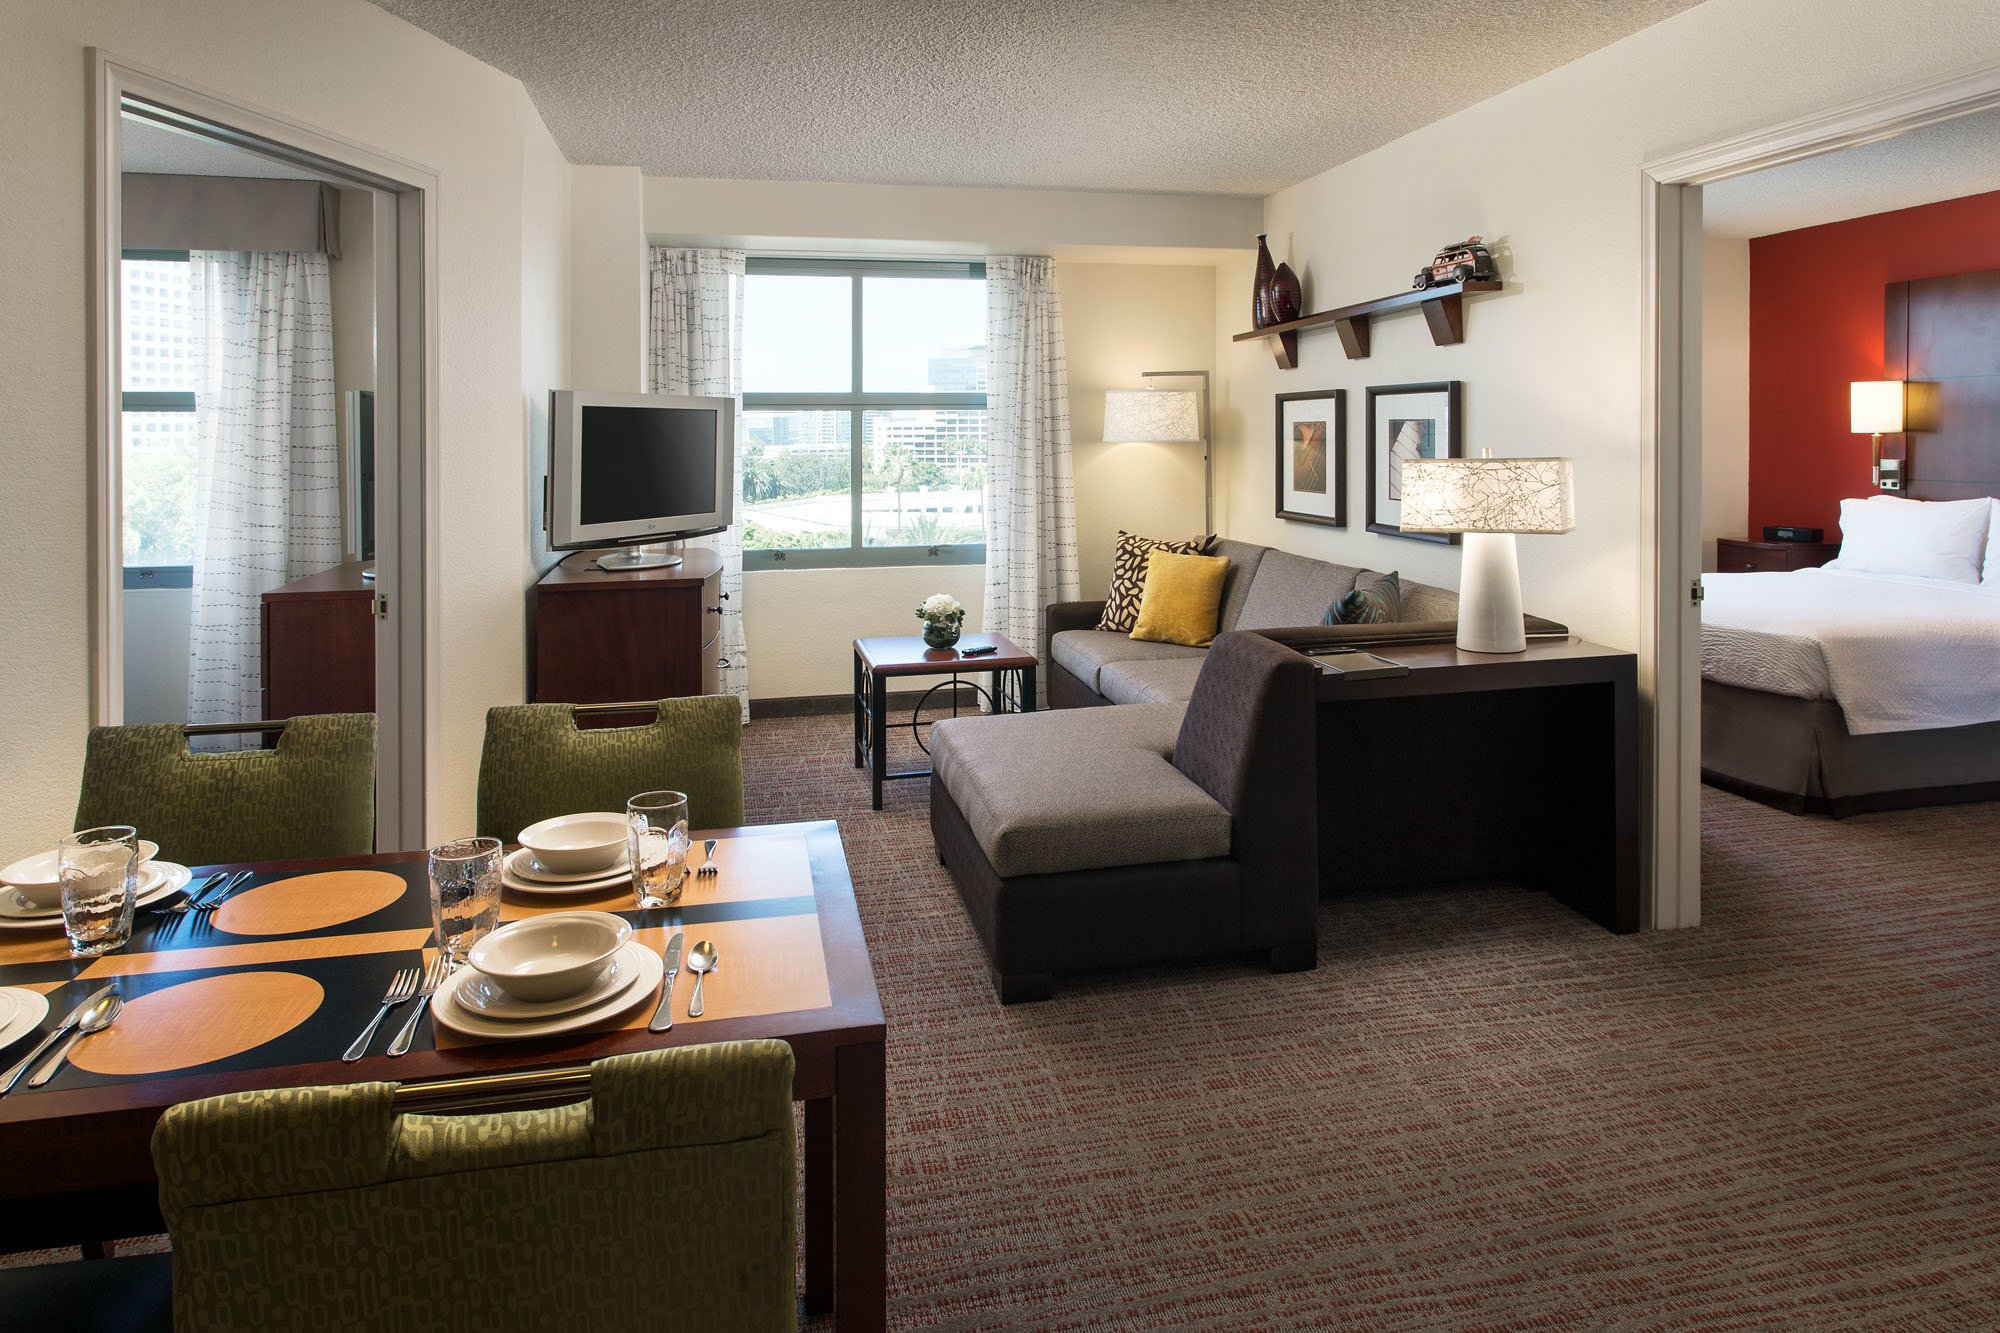 Two-Bedroom Suite - The Two-Bedroom Suites in our hotel are perfect for families and groups traveling to Orange County, California. Complimentary Internet access and a full kitchen with oven are among the amenities.